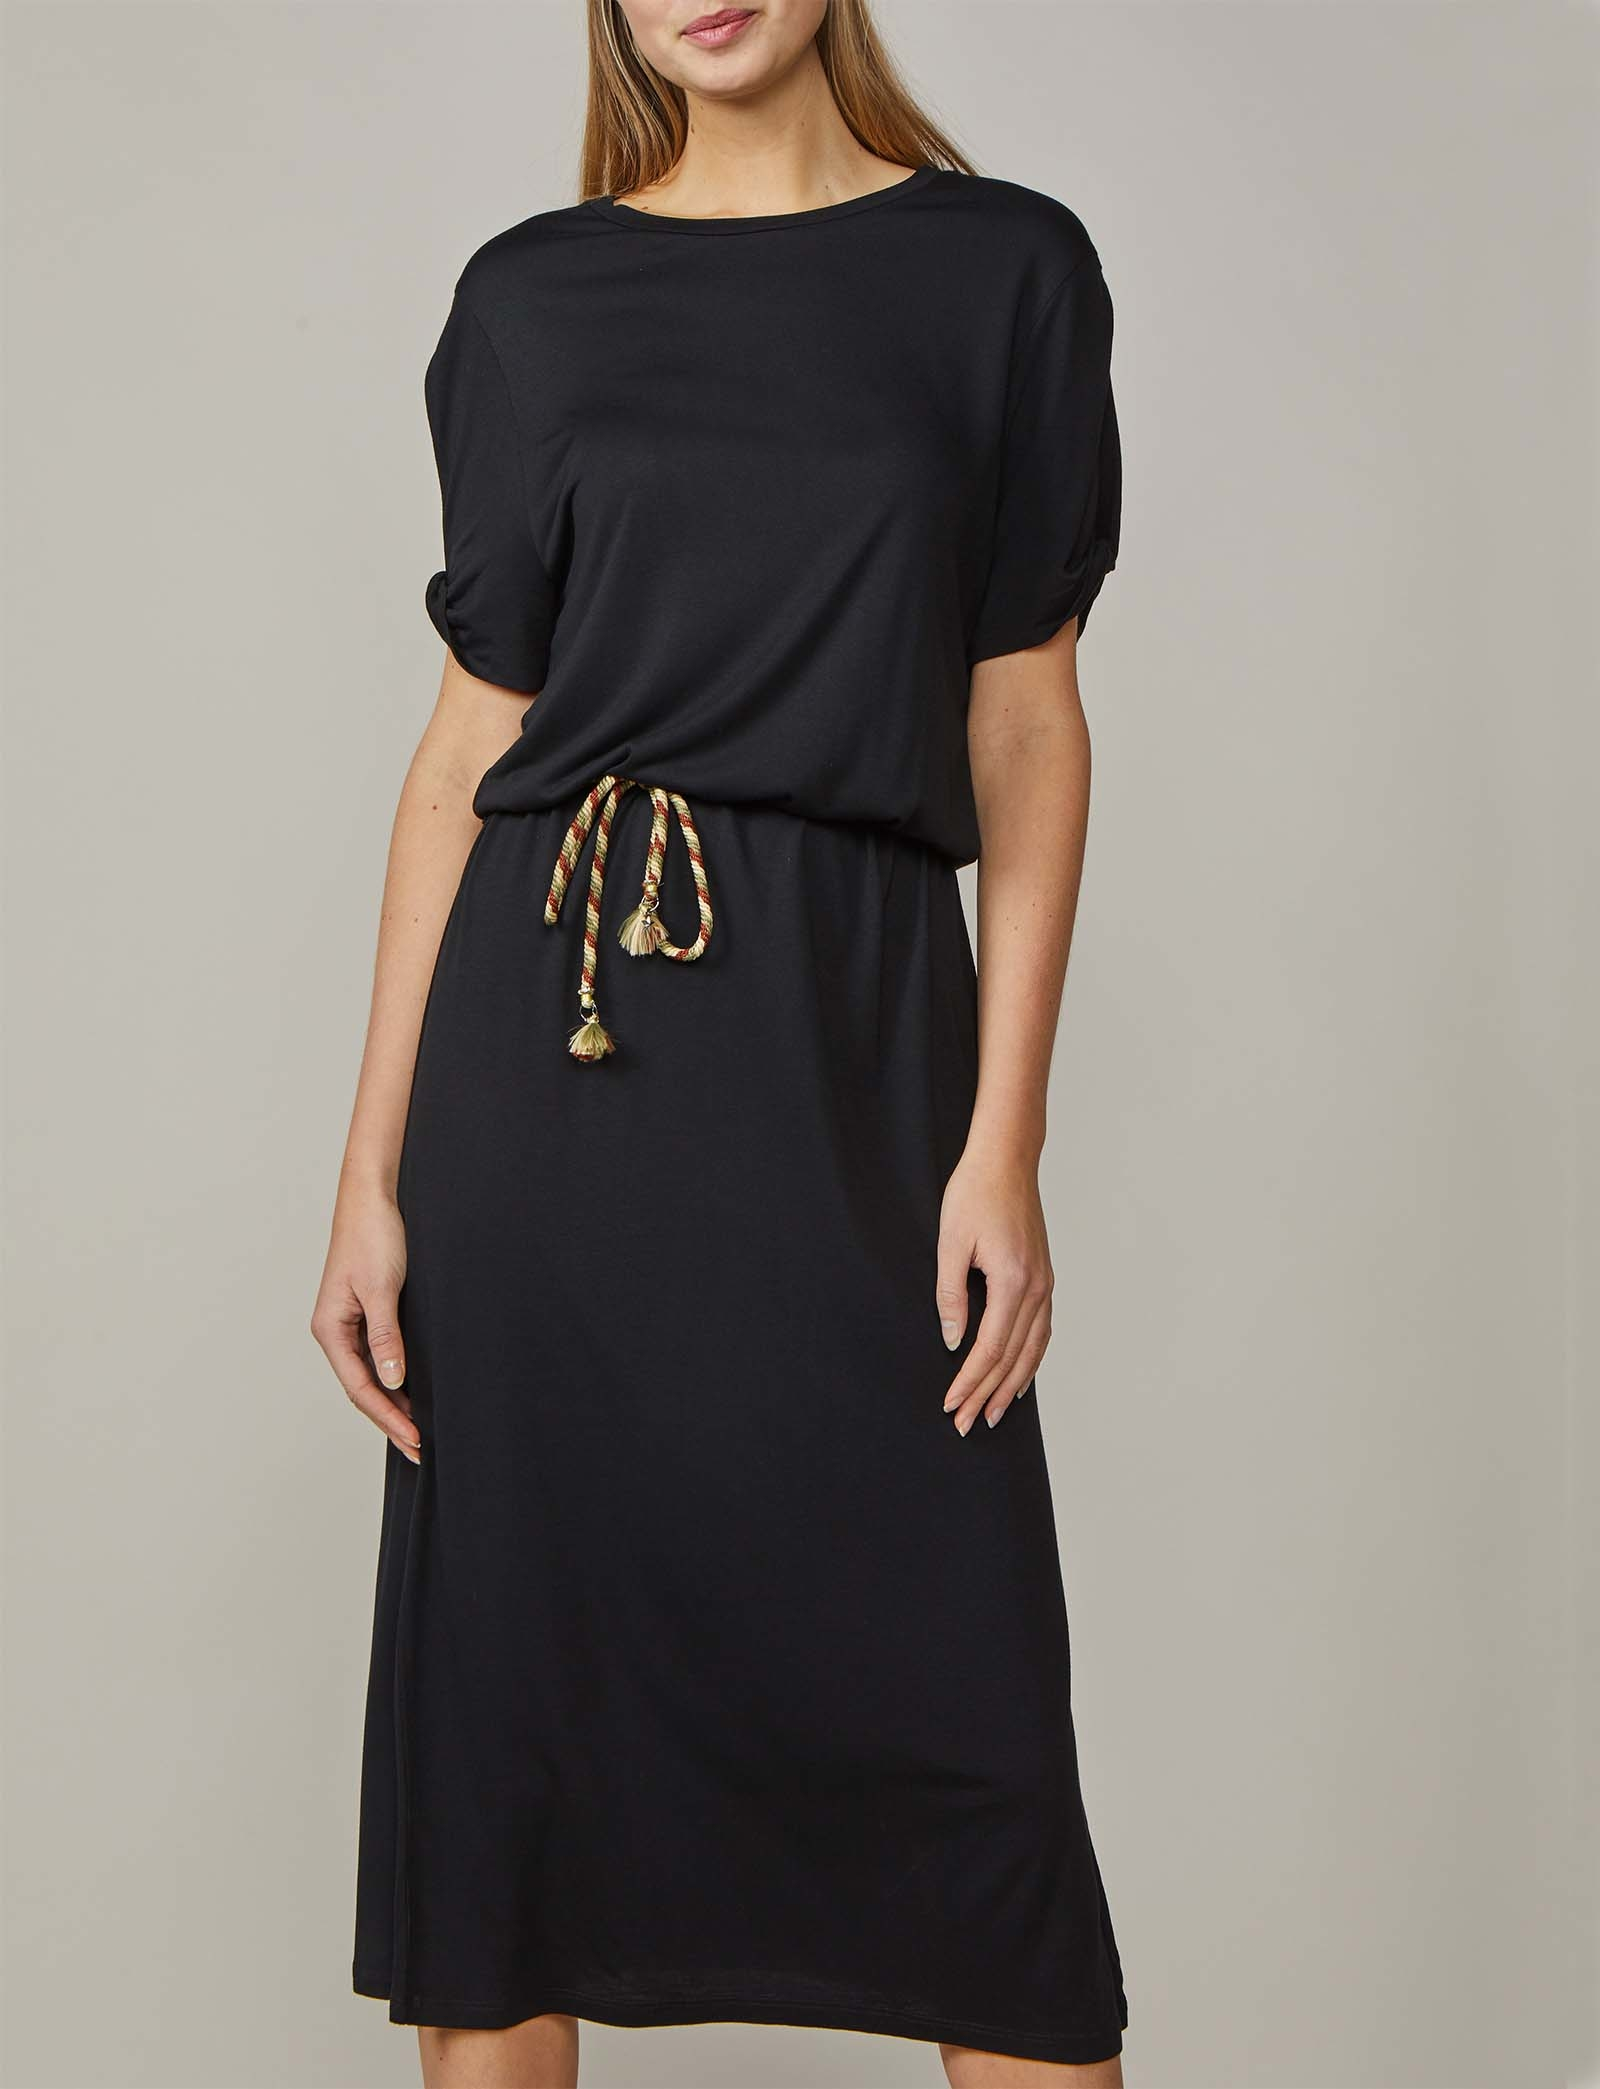 Summum Woman Maxi Dress Black and Mahogany